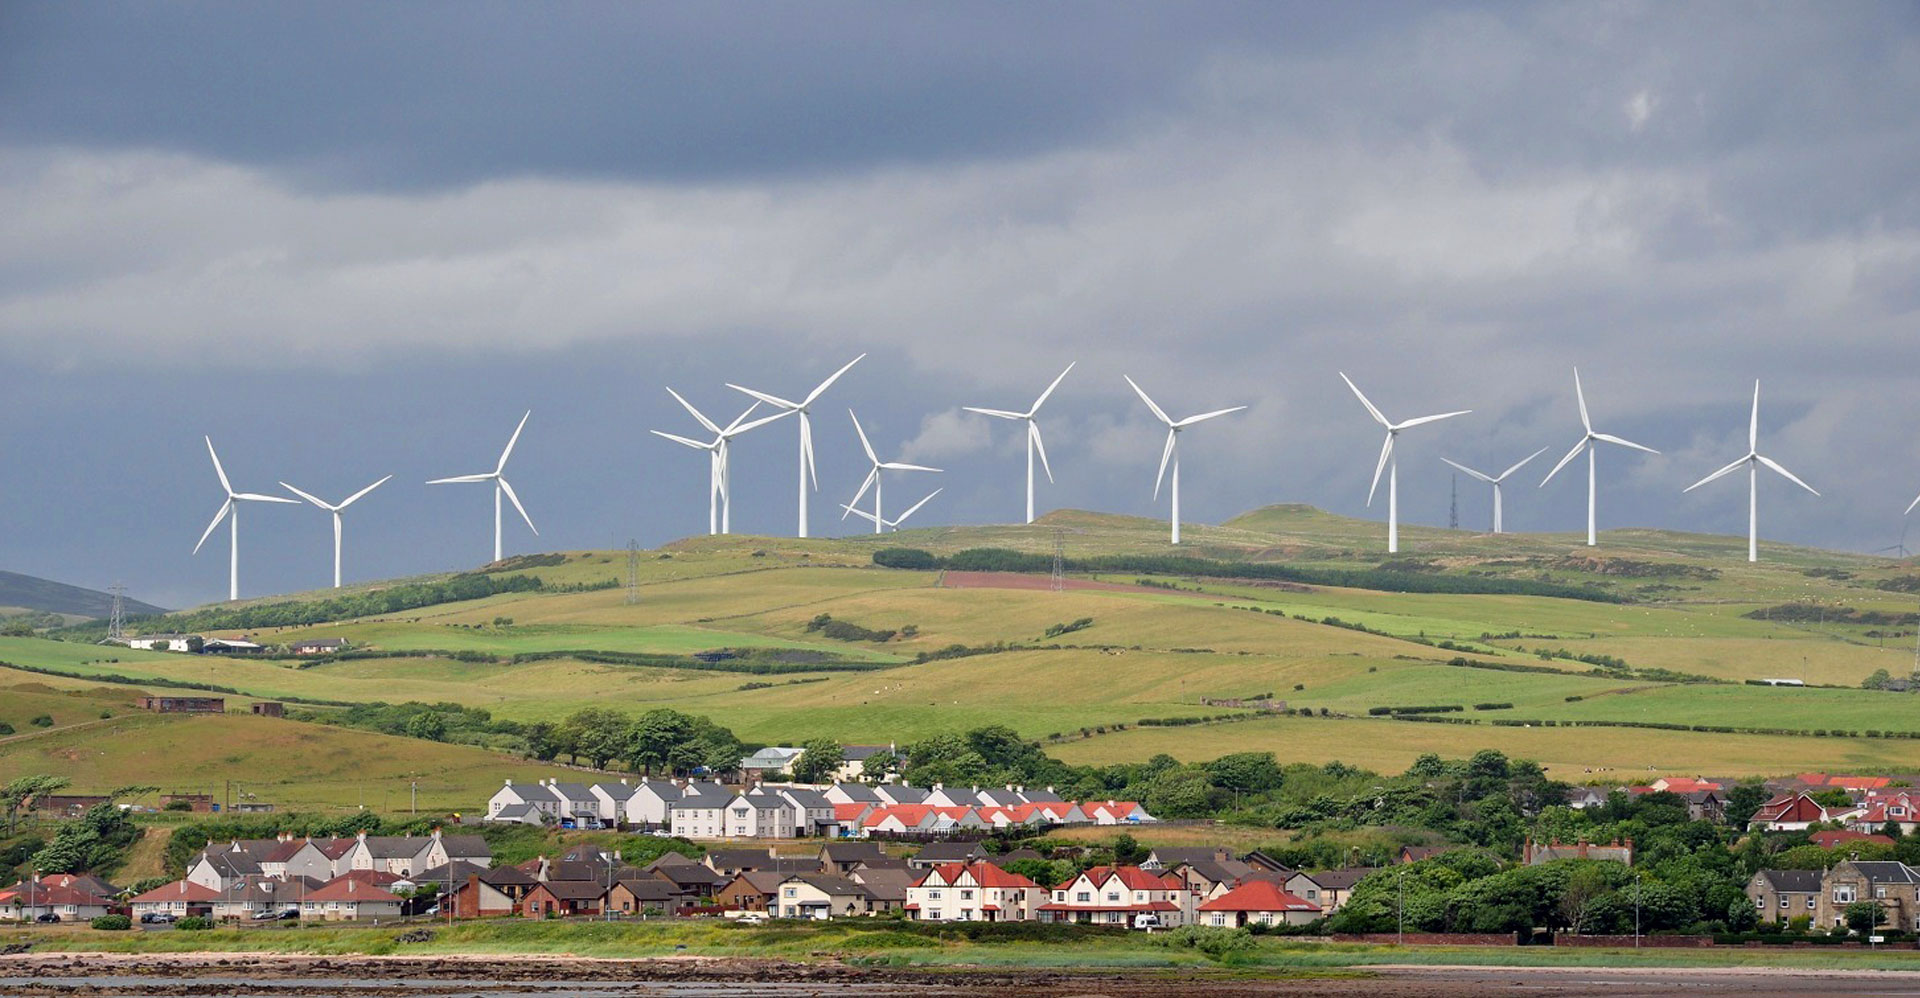 ardrossan village and wind turbines